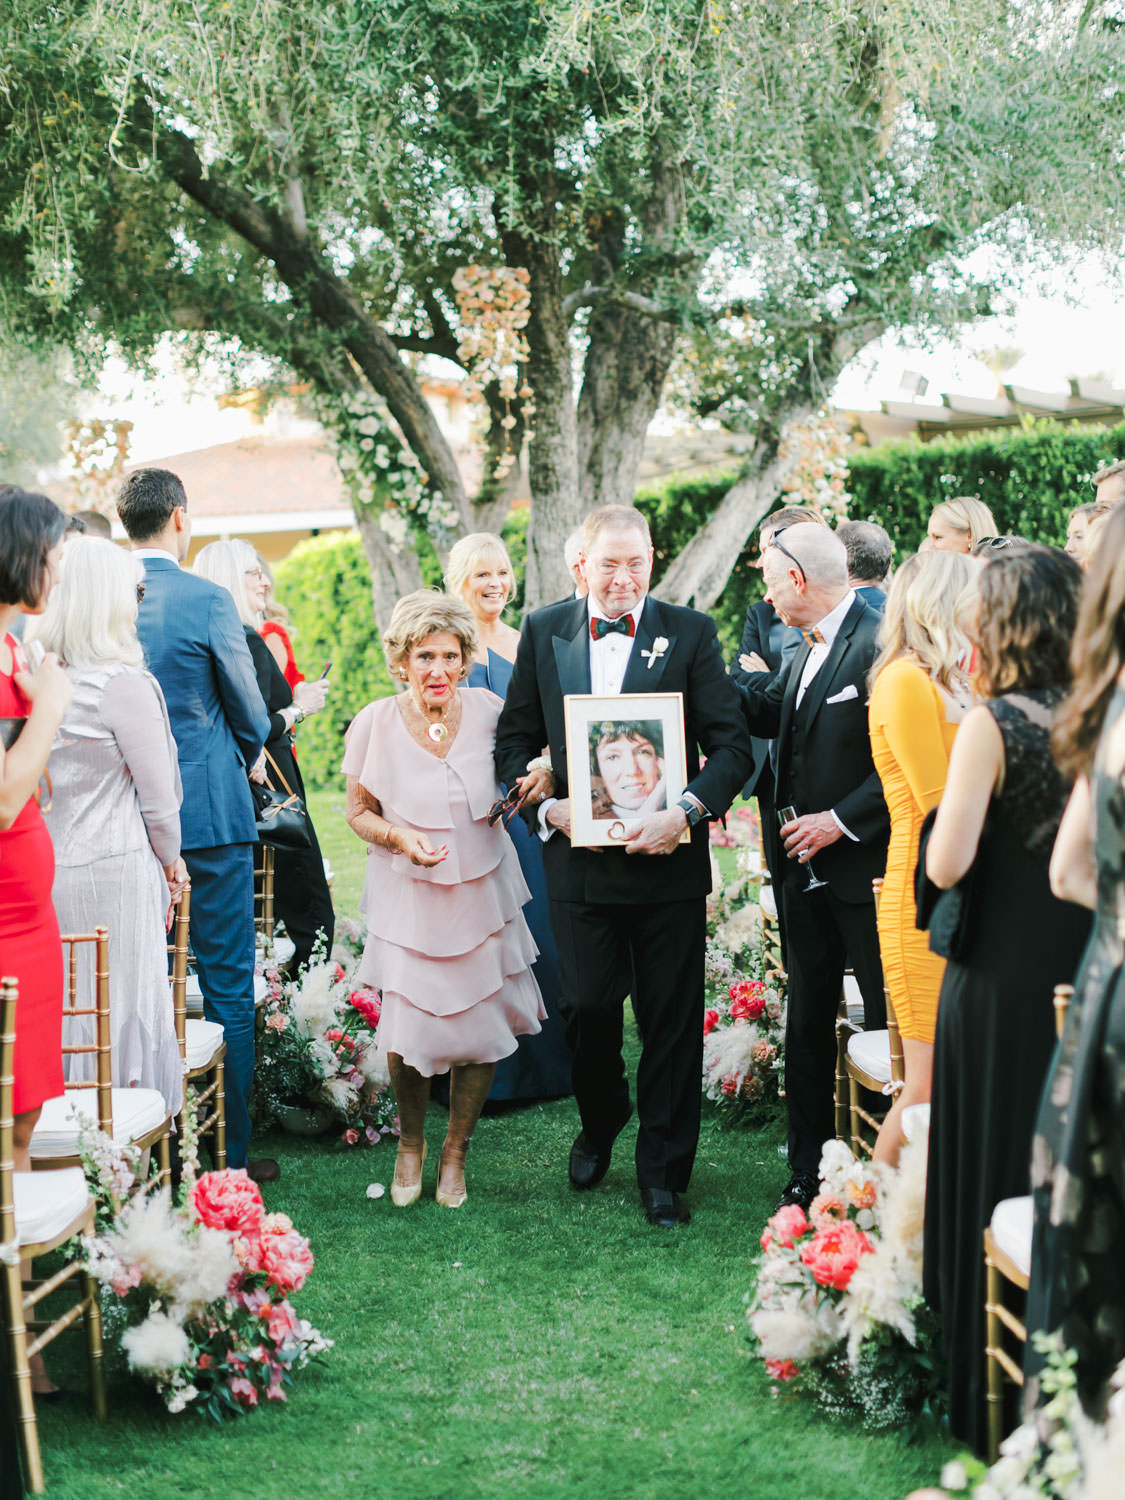 Father of the bride walking down the aisle carrying a framed portrait of the bride's deceased mother in her honor. Miramonte Resort ceremony on Miramonte Green. Film photography by Cavin Elizabeth.